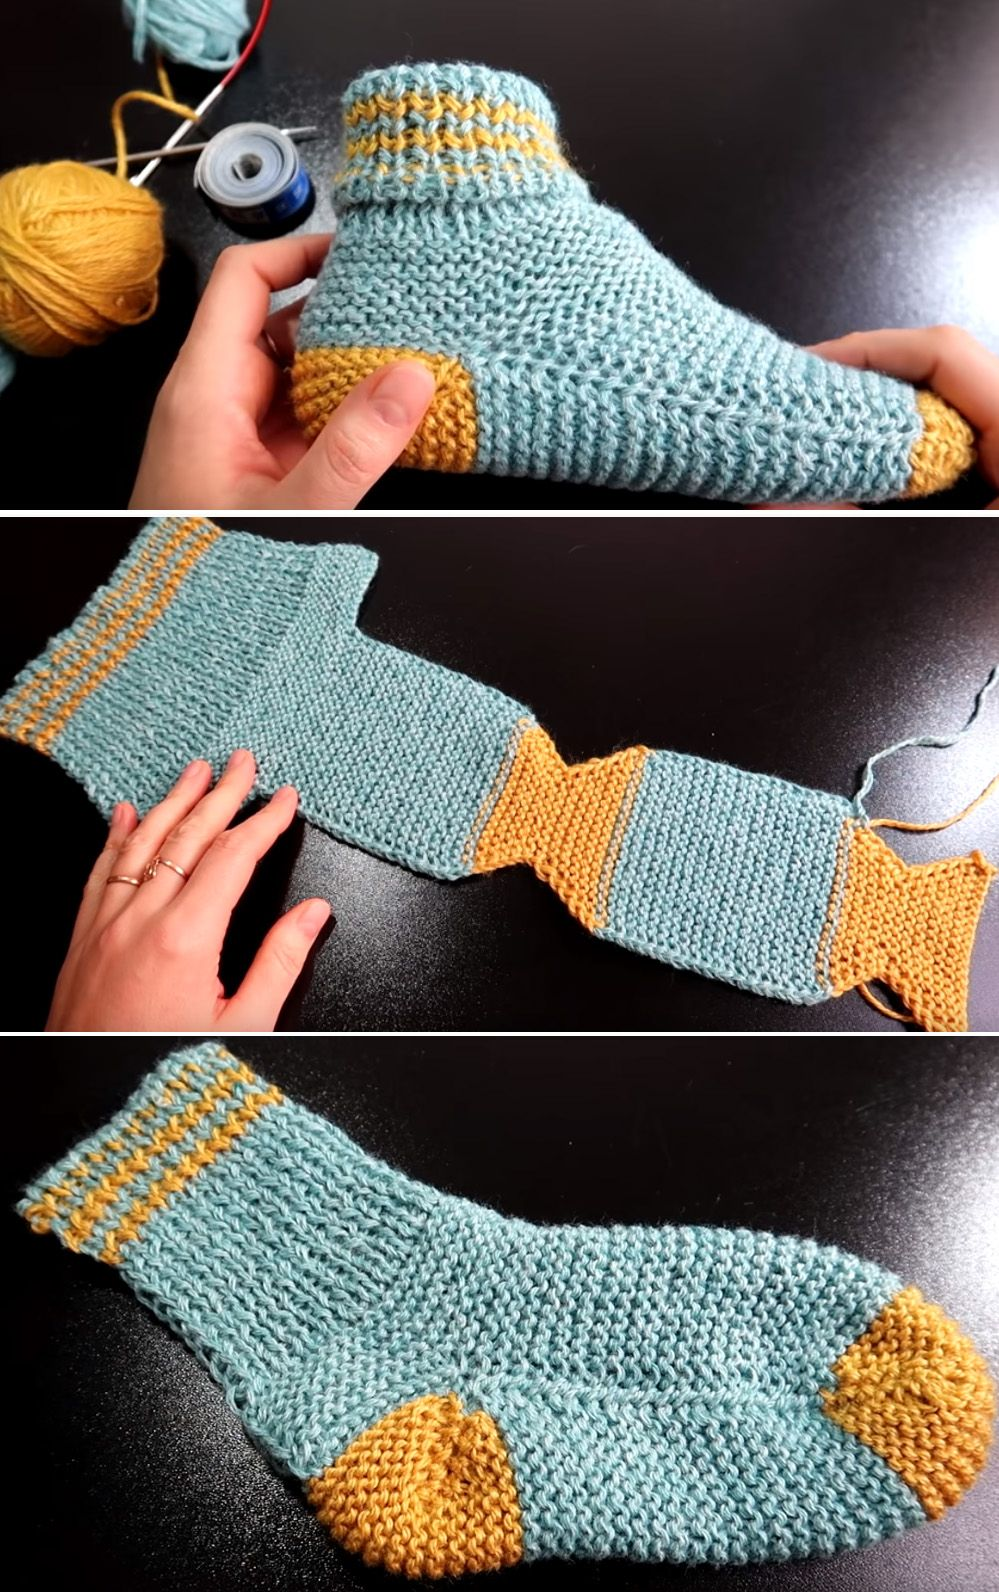 Two Needle Socks - Free Knitting Pattern #knittingideas